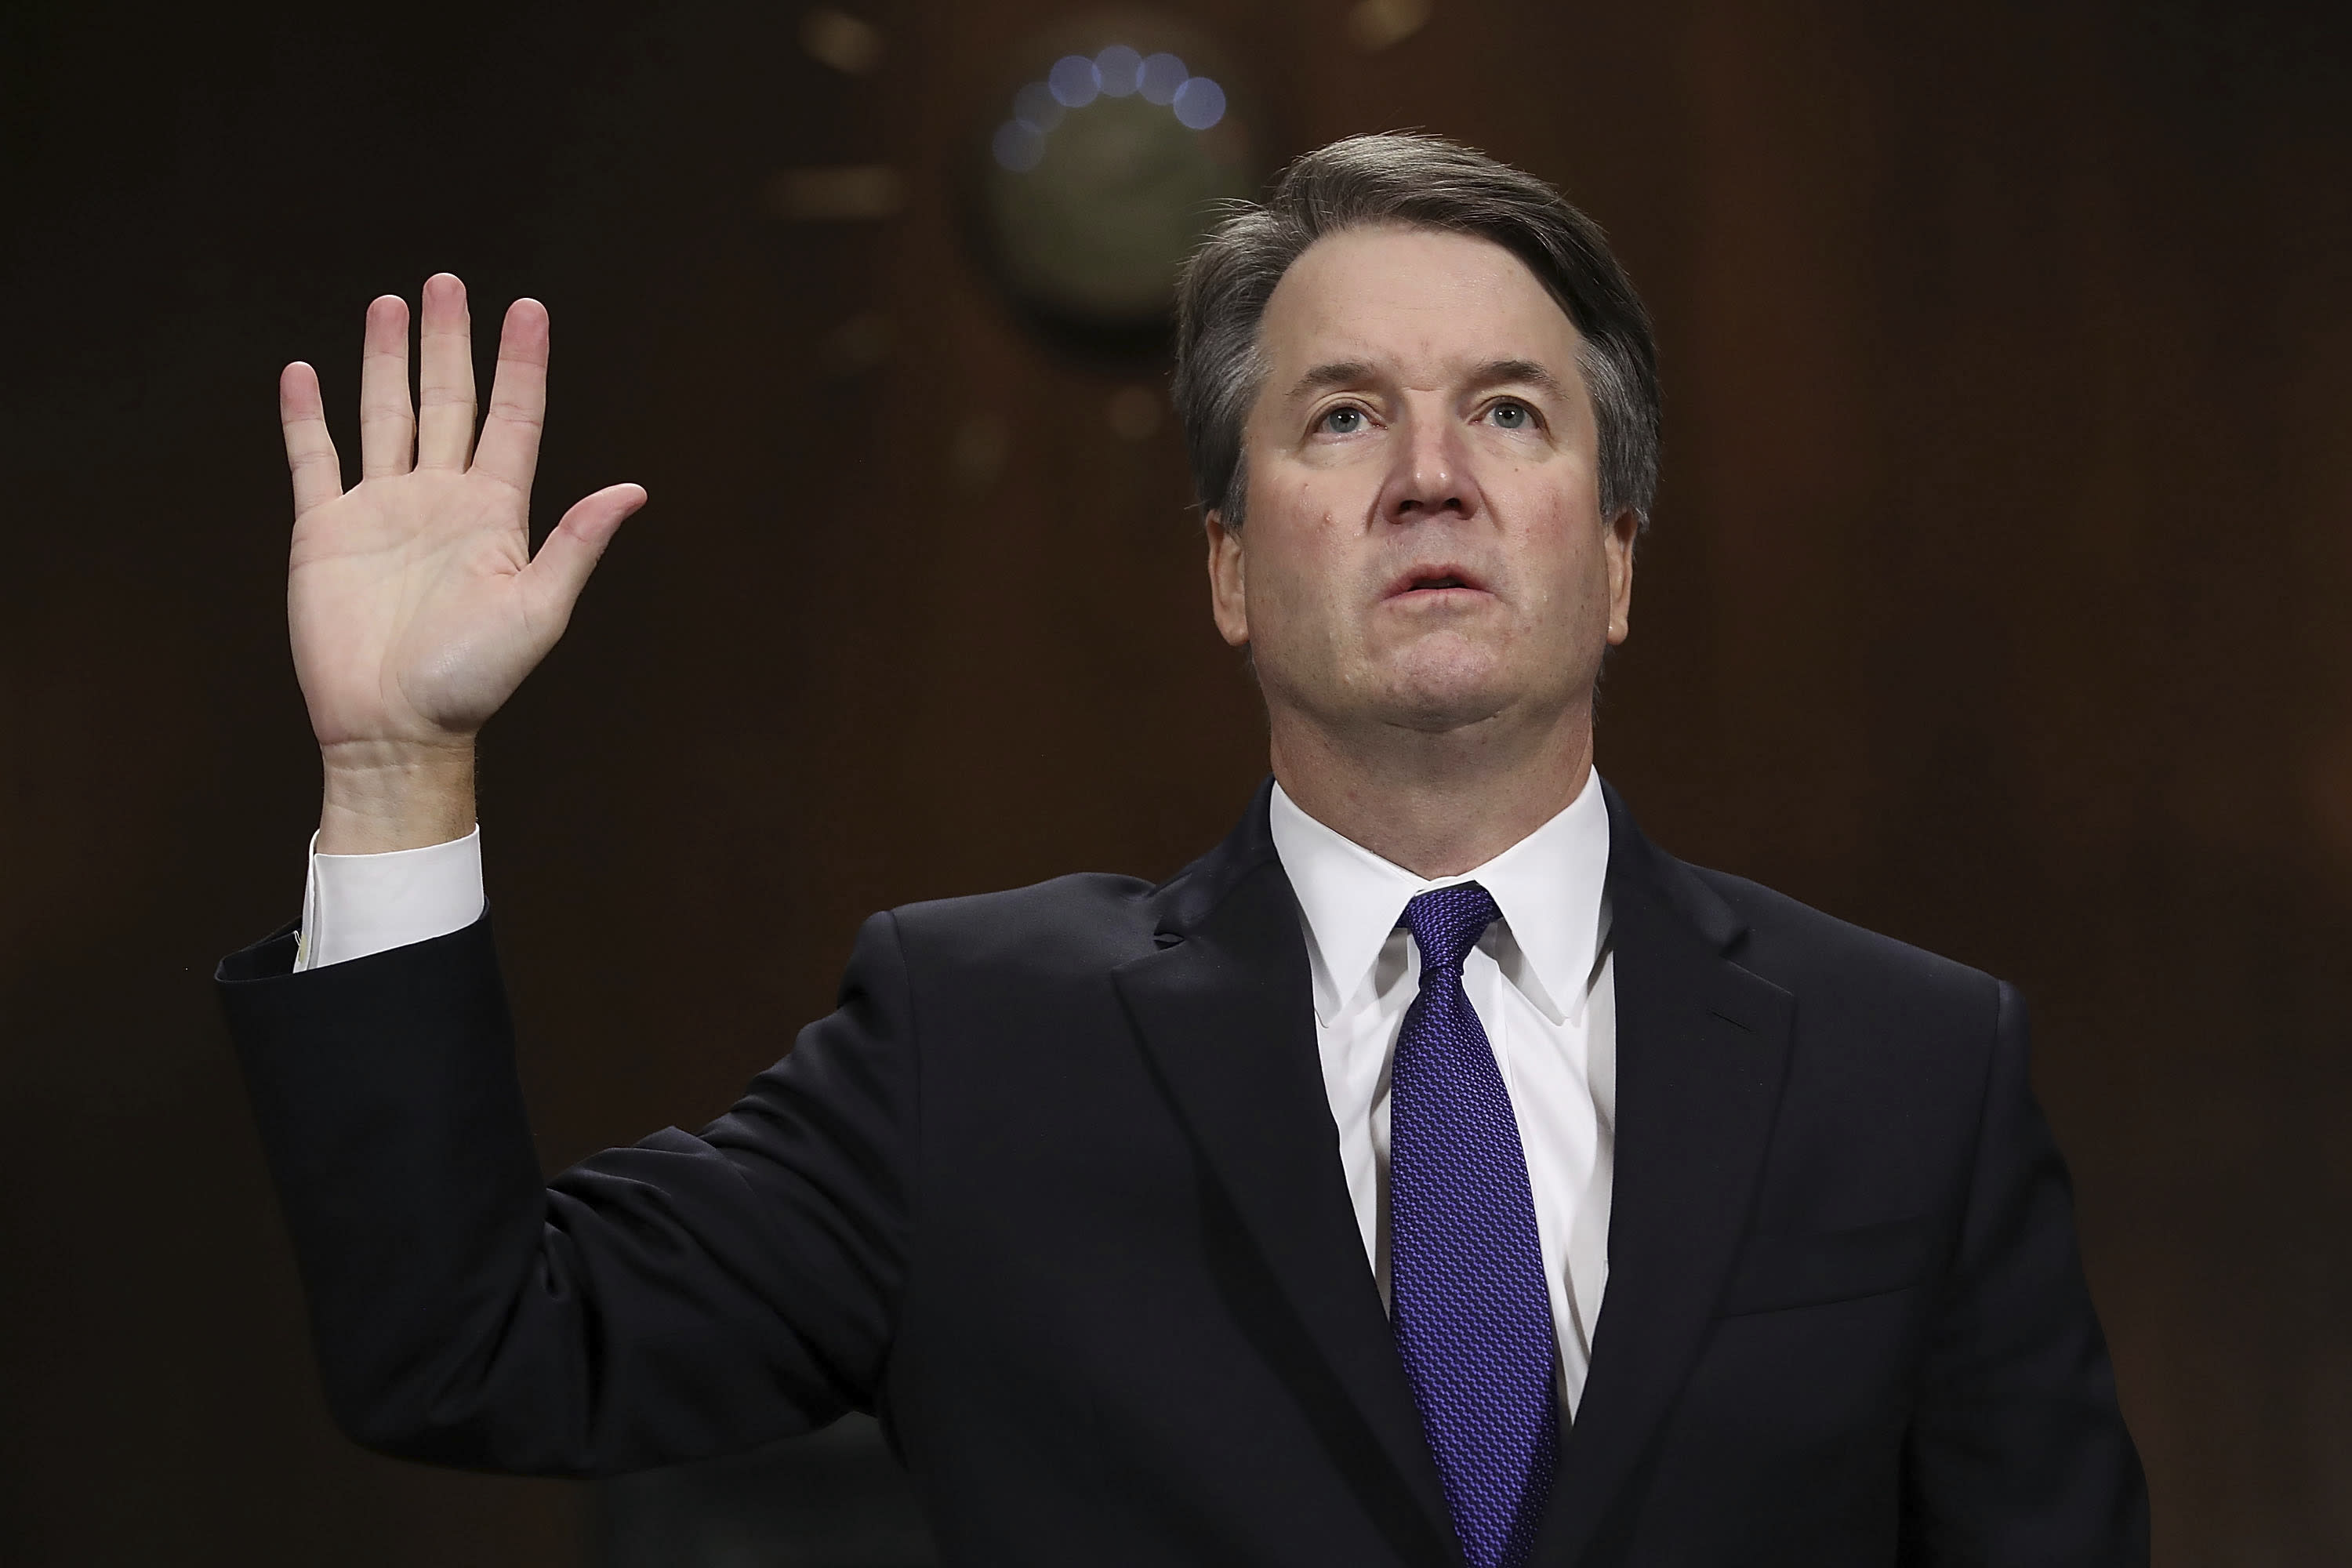 Justice Kavanaugh declines more than $600,000 raised in GoFundMe campaign